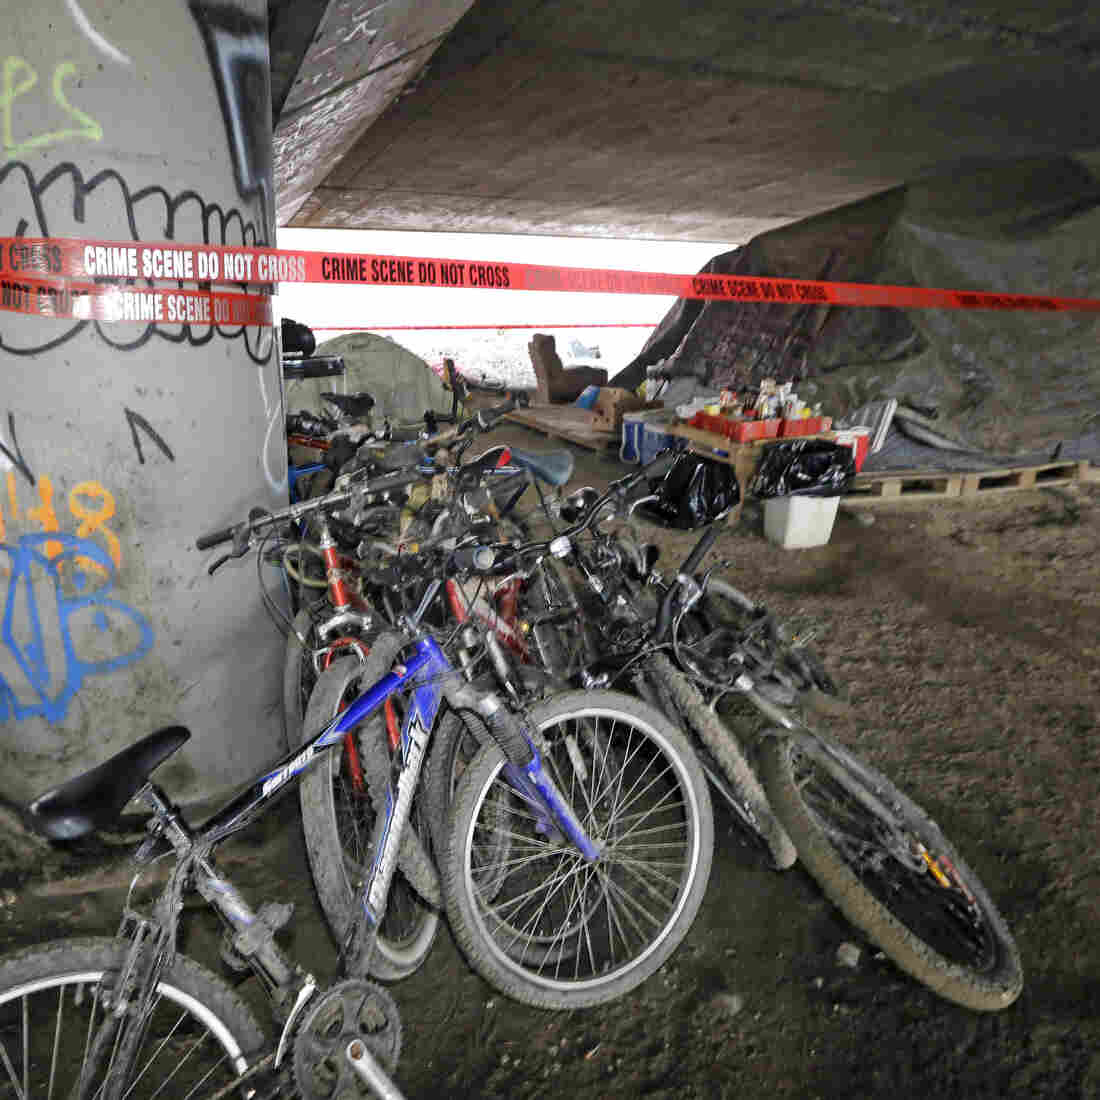 The area under Interstate 5 in Seattle where a shooting took place last week. Police say they've arrested three teenagers in the case.